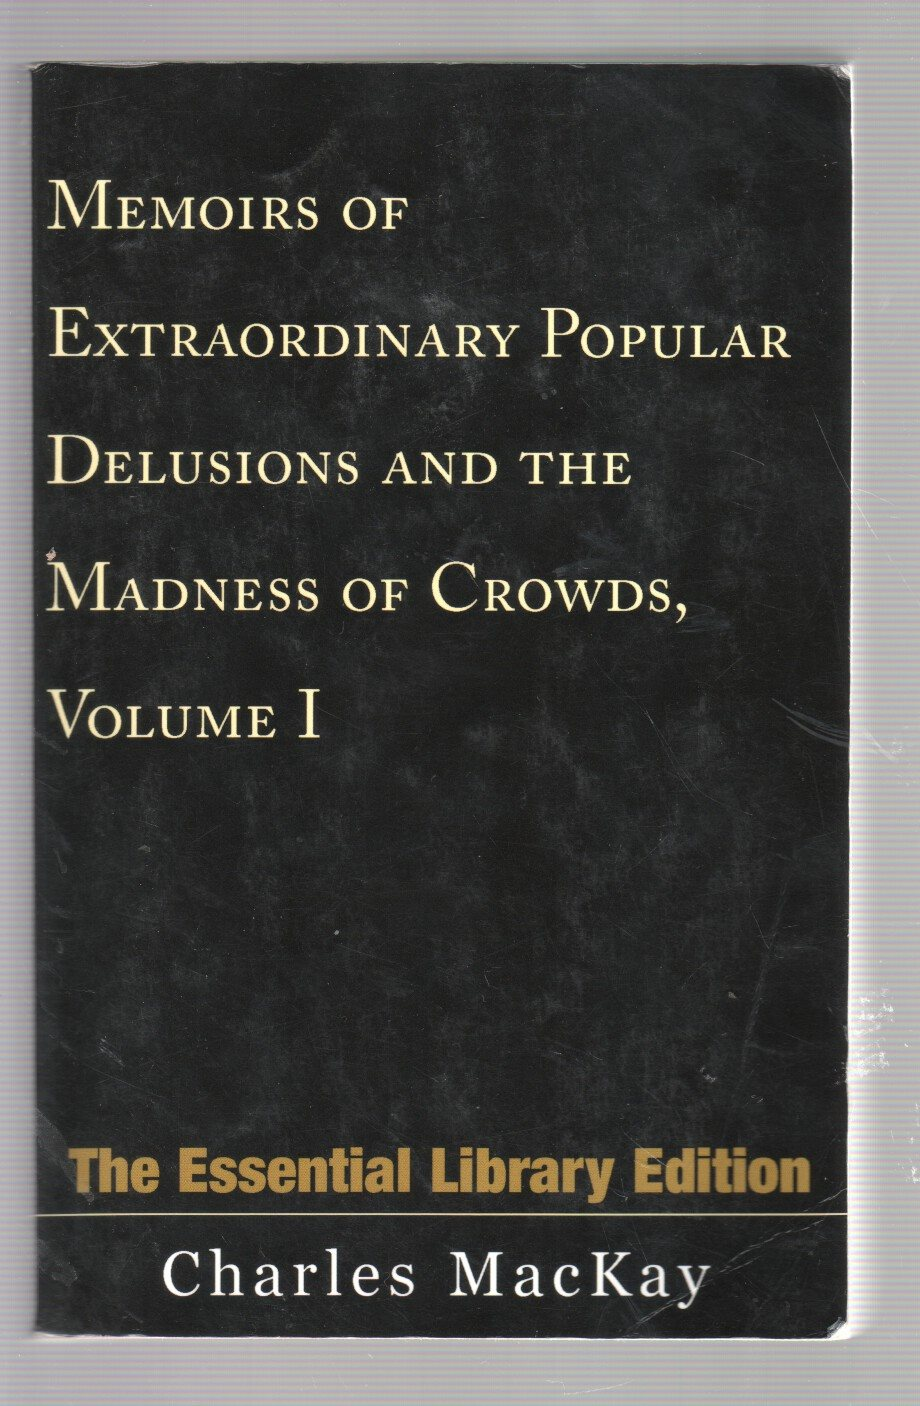 Extraordinary Popular Delusions and the Madness of Crowds.